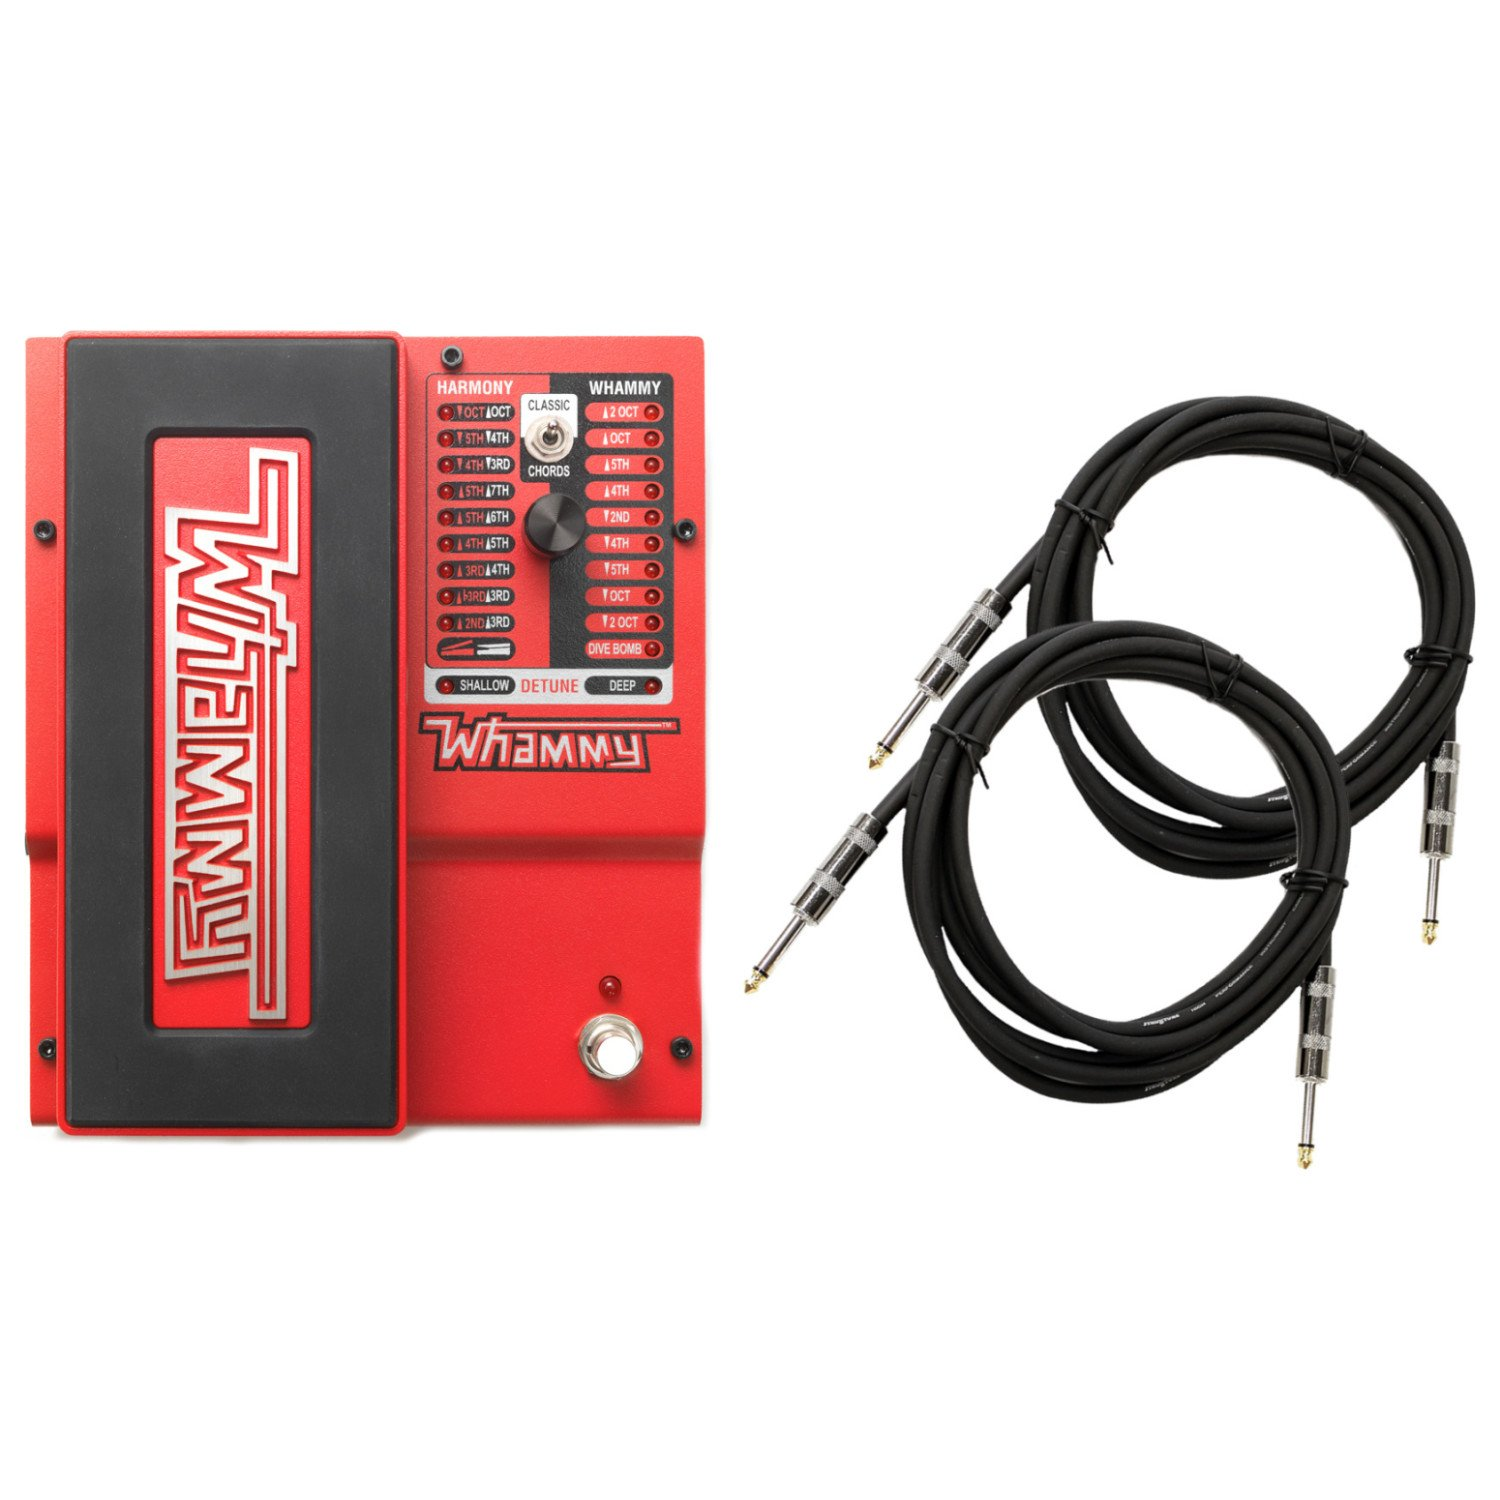 Digitech Whammy 5 Multi-Effects Pedal Bundle with 2 Cables and Power Supply